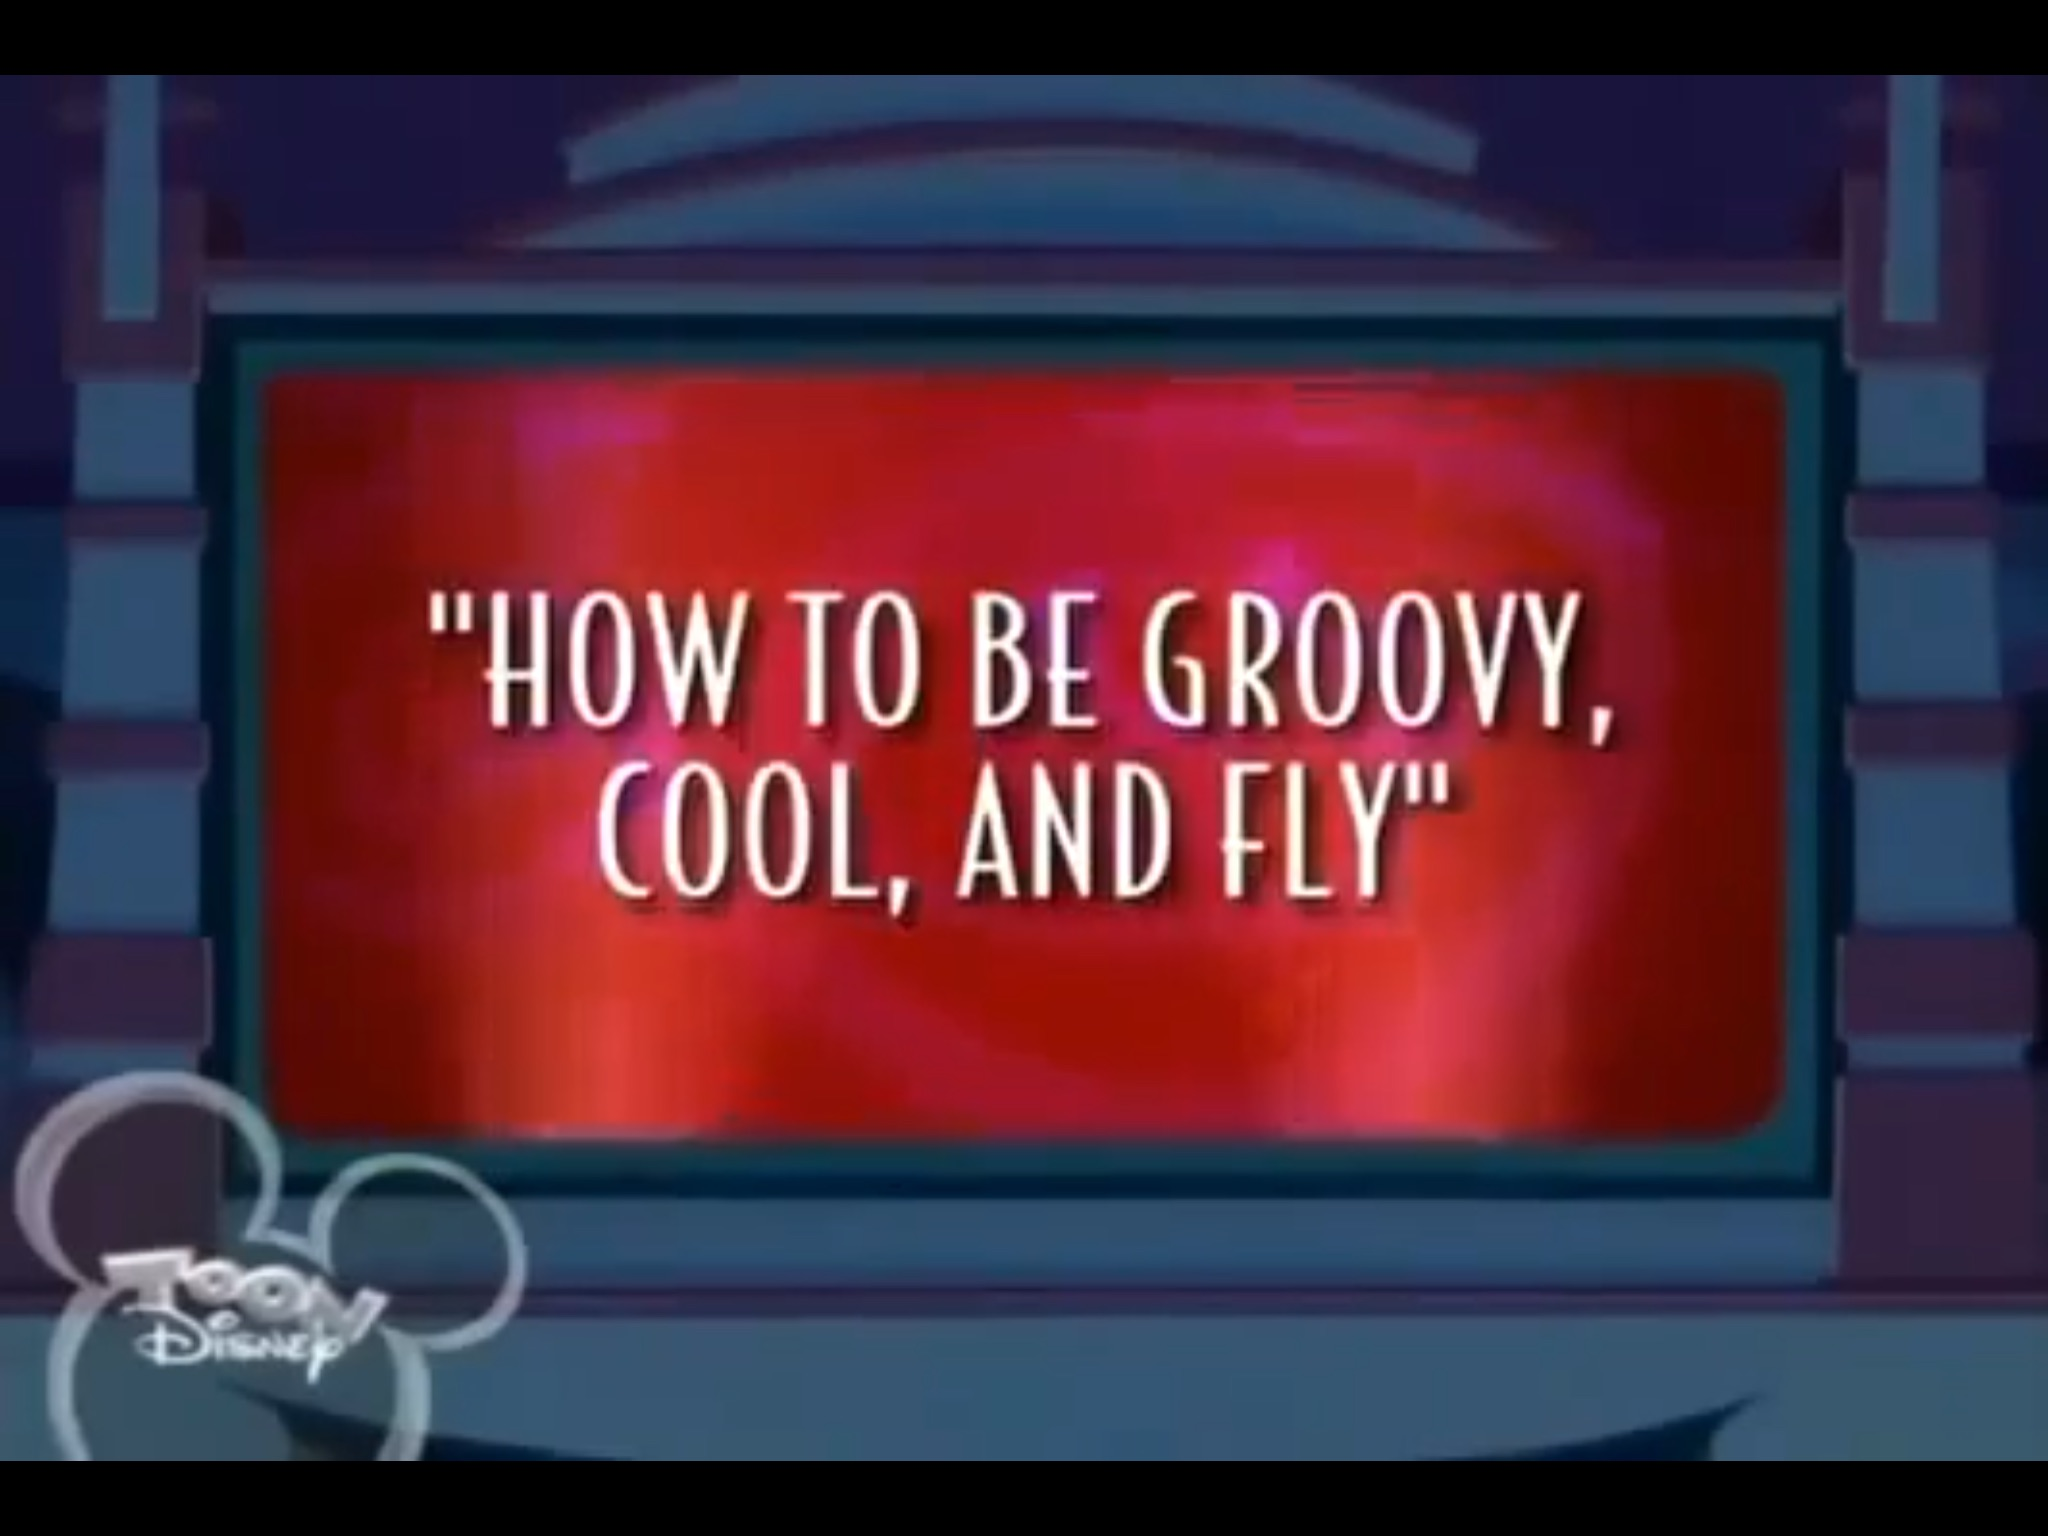 How to Be Groovy, Cool and Fly